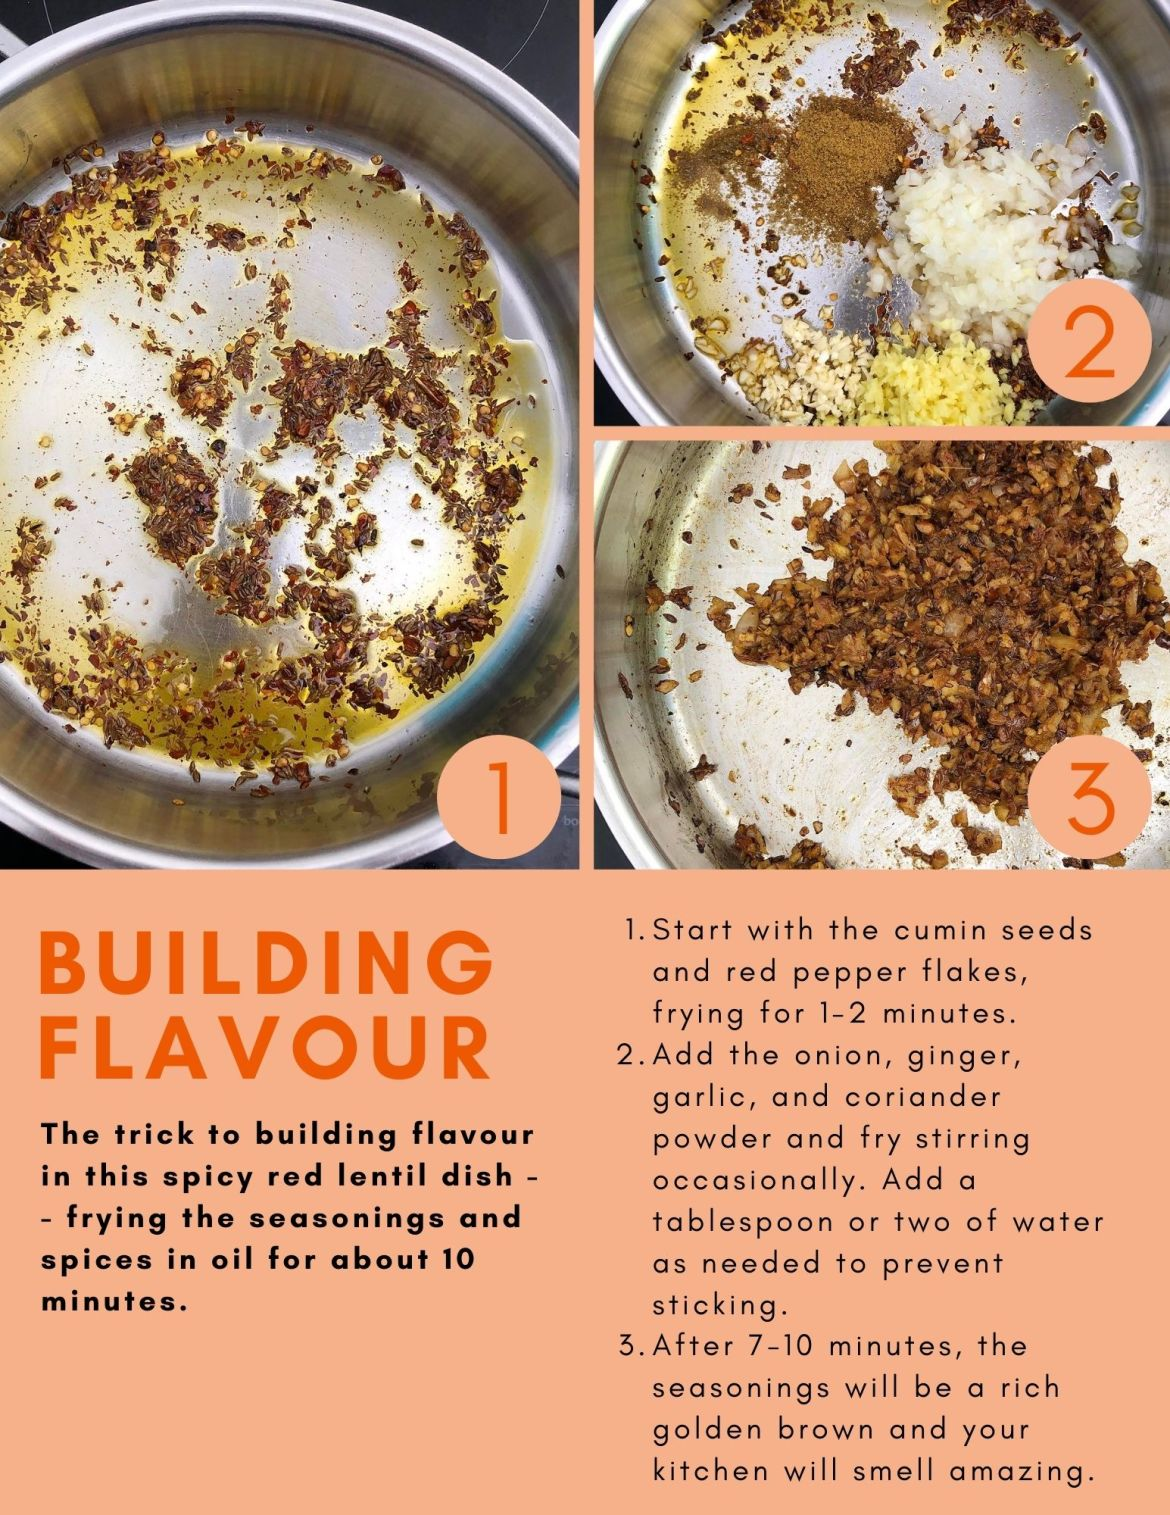 Infographic titled: Building Flavour. Text reads: The trick to building flavour in this spicy red lentil dish -- frying the seasonings and spices in oil for about 10 minutes. Image shows a frying pan with the dried spices. Text reads: Start with the cumin seeds and red pepper flakes, frying for 1-2 minutes. Image shows the onion, garlic, ginger and coriander powder added to the dried spics. Text reads: Add the onion, ginger, garlic, and coriander powder and fry stirring occasionally. Add a tablespoon or two of water as needed to prevent sticking . Images shows the seasoning mix which is now golden brown. Text reads: After 7-10 minutes, the seasonings will be a rich golden brown and your kitchen will smell amazing.